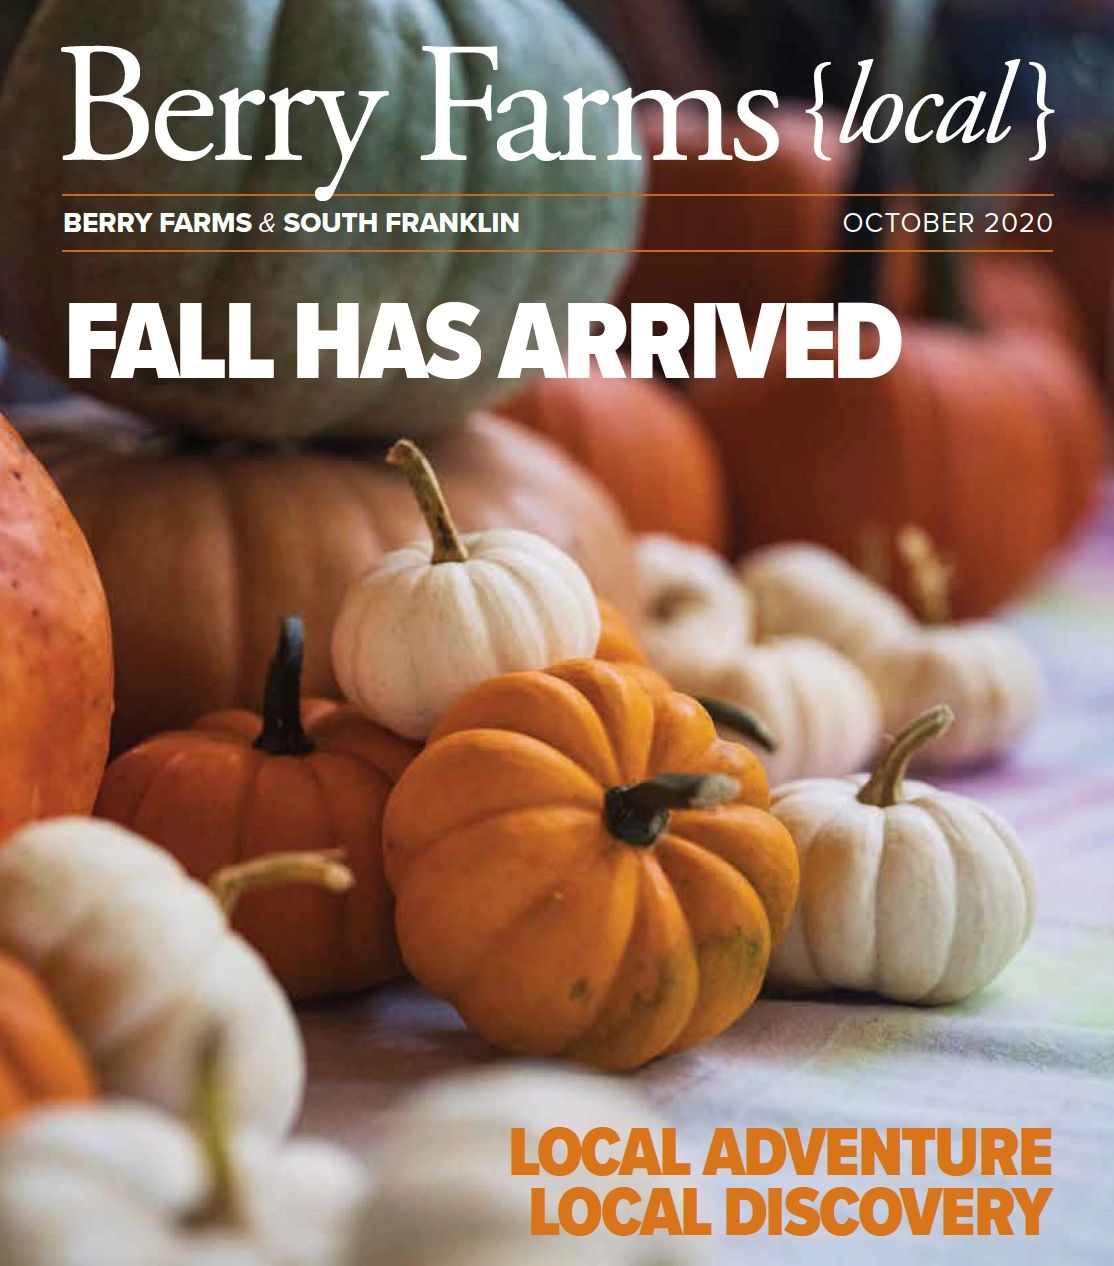 Our October Cover